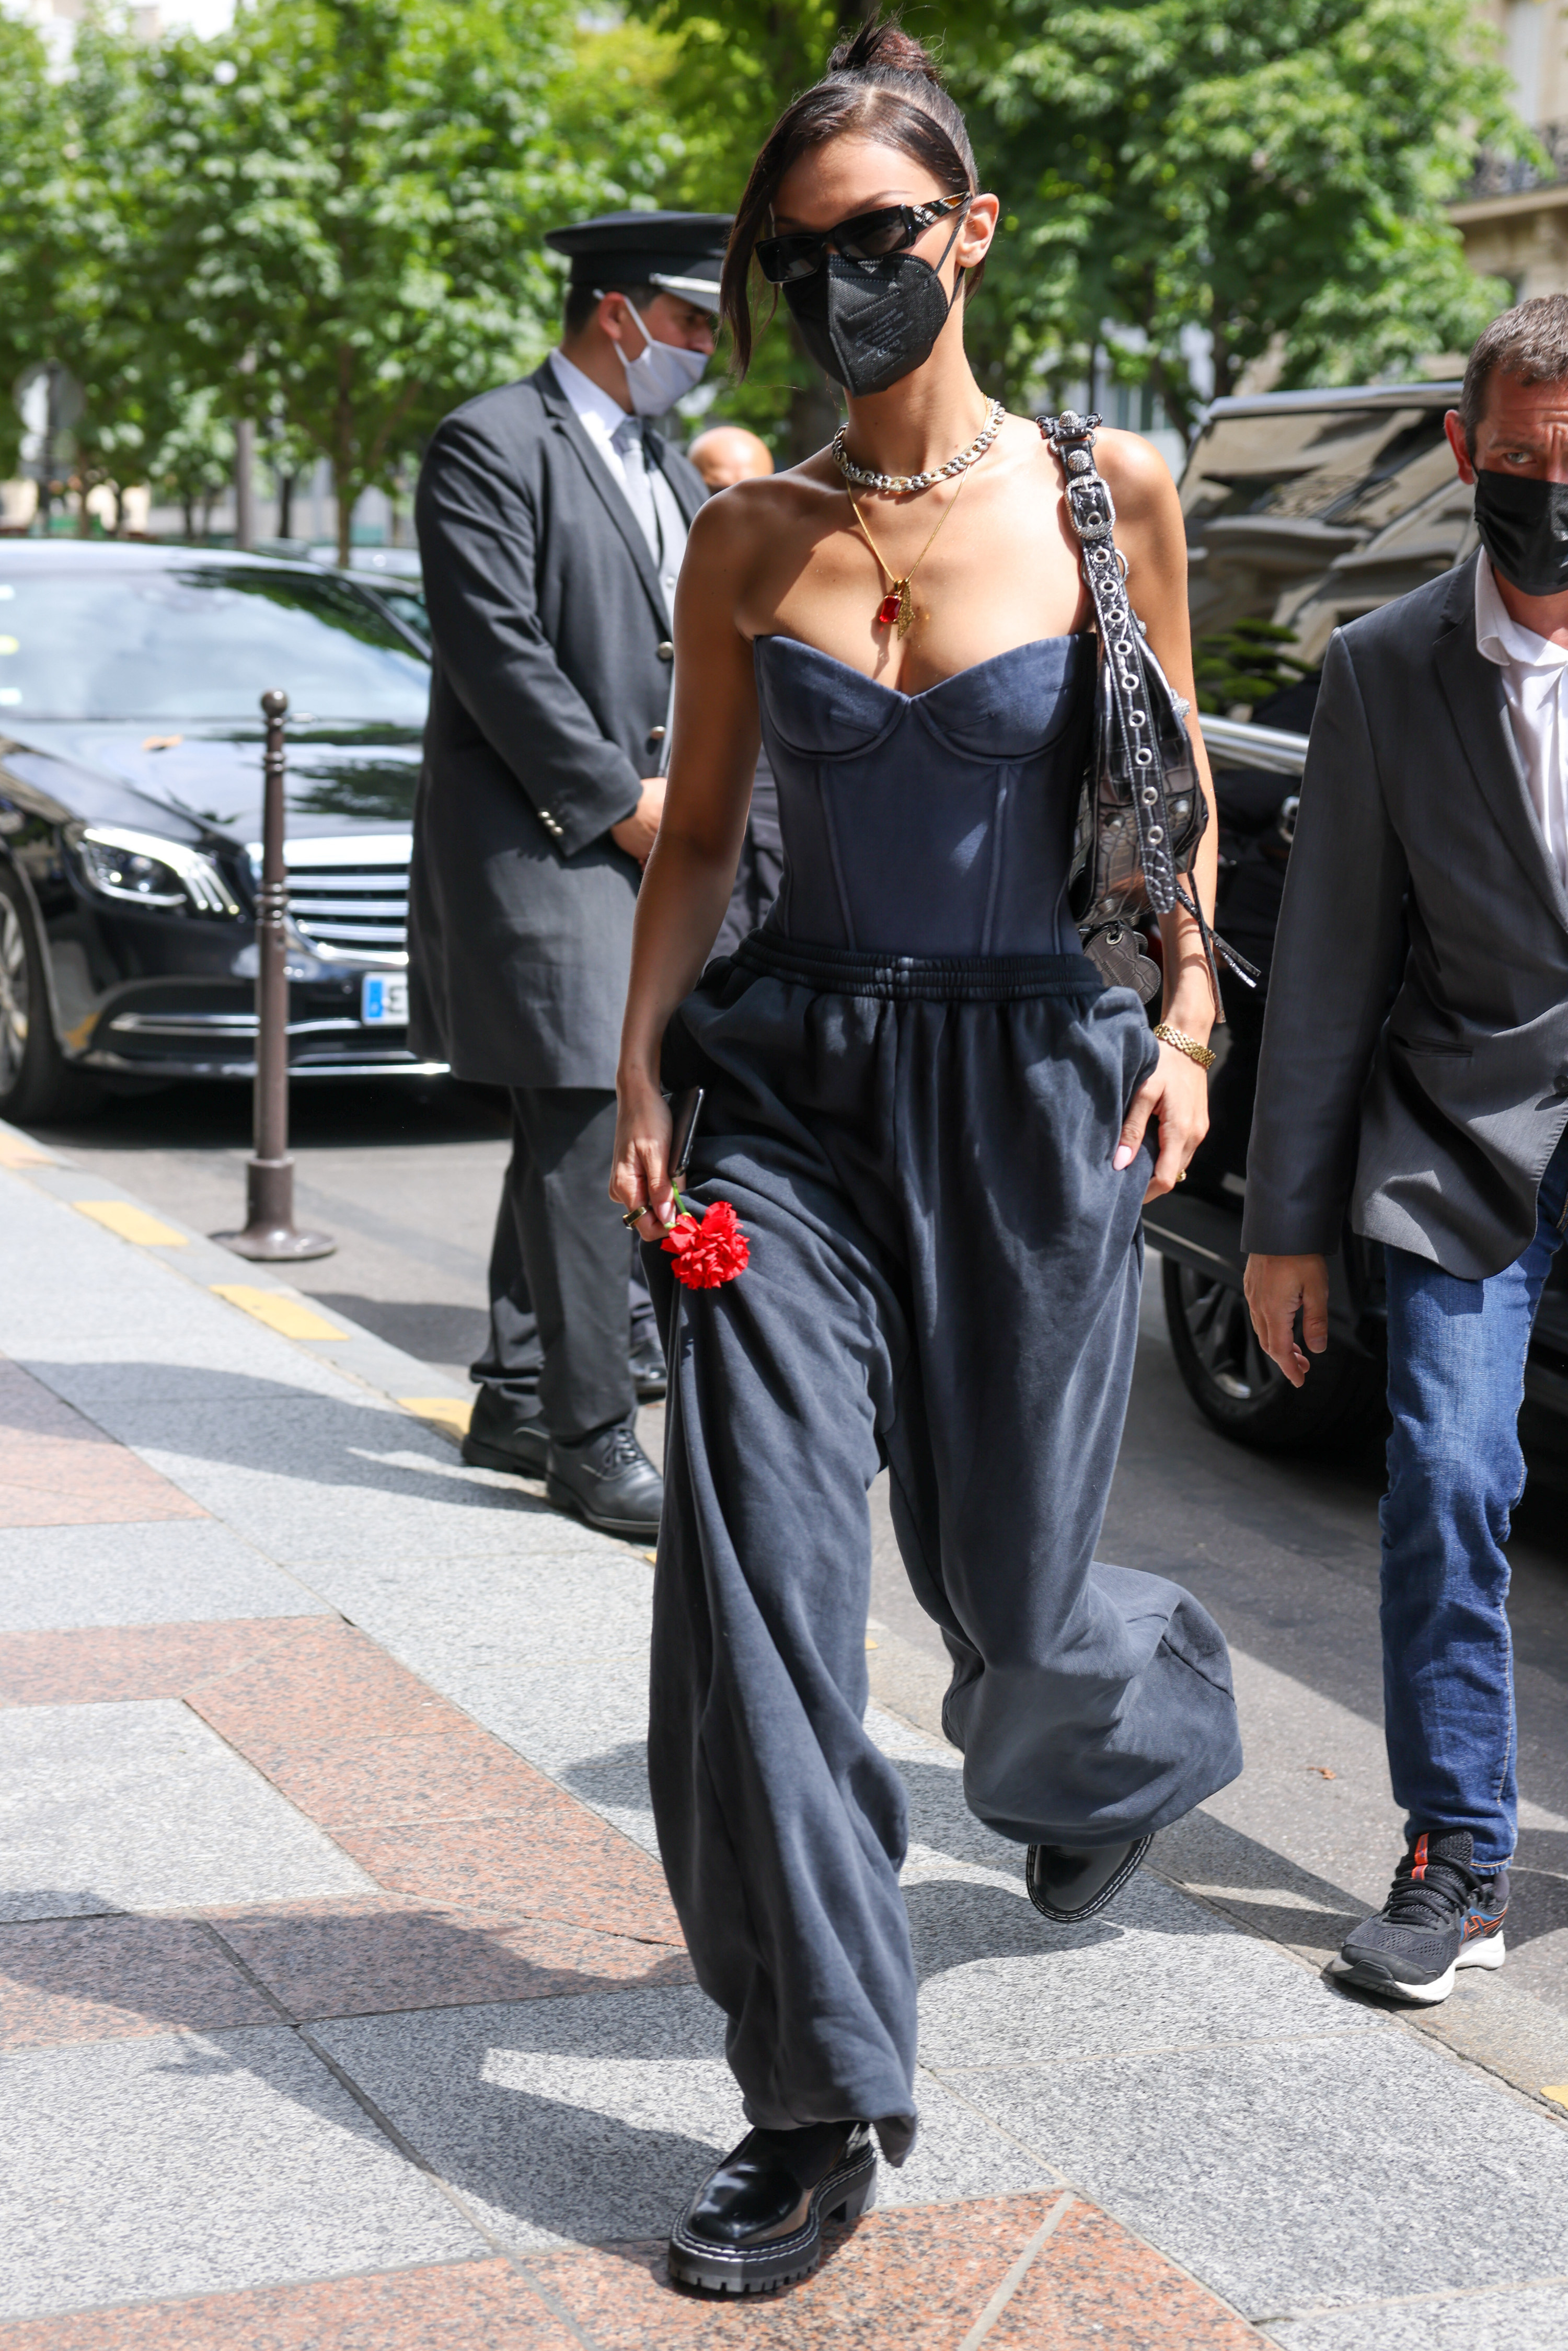 Bella arriving at her hotel wearing a denim top and oversized pants